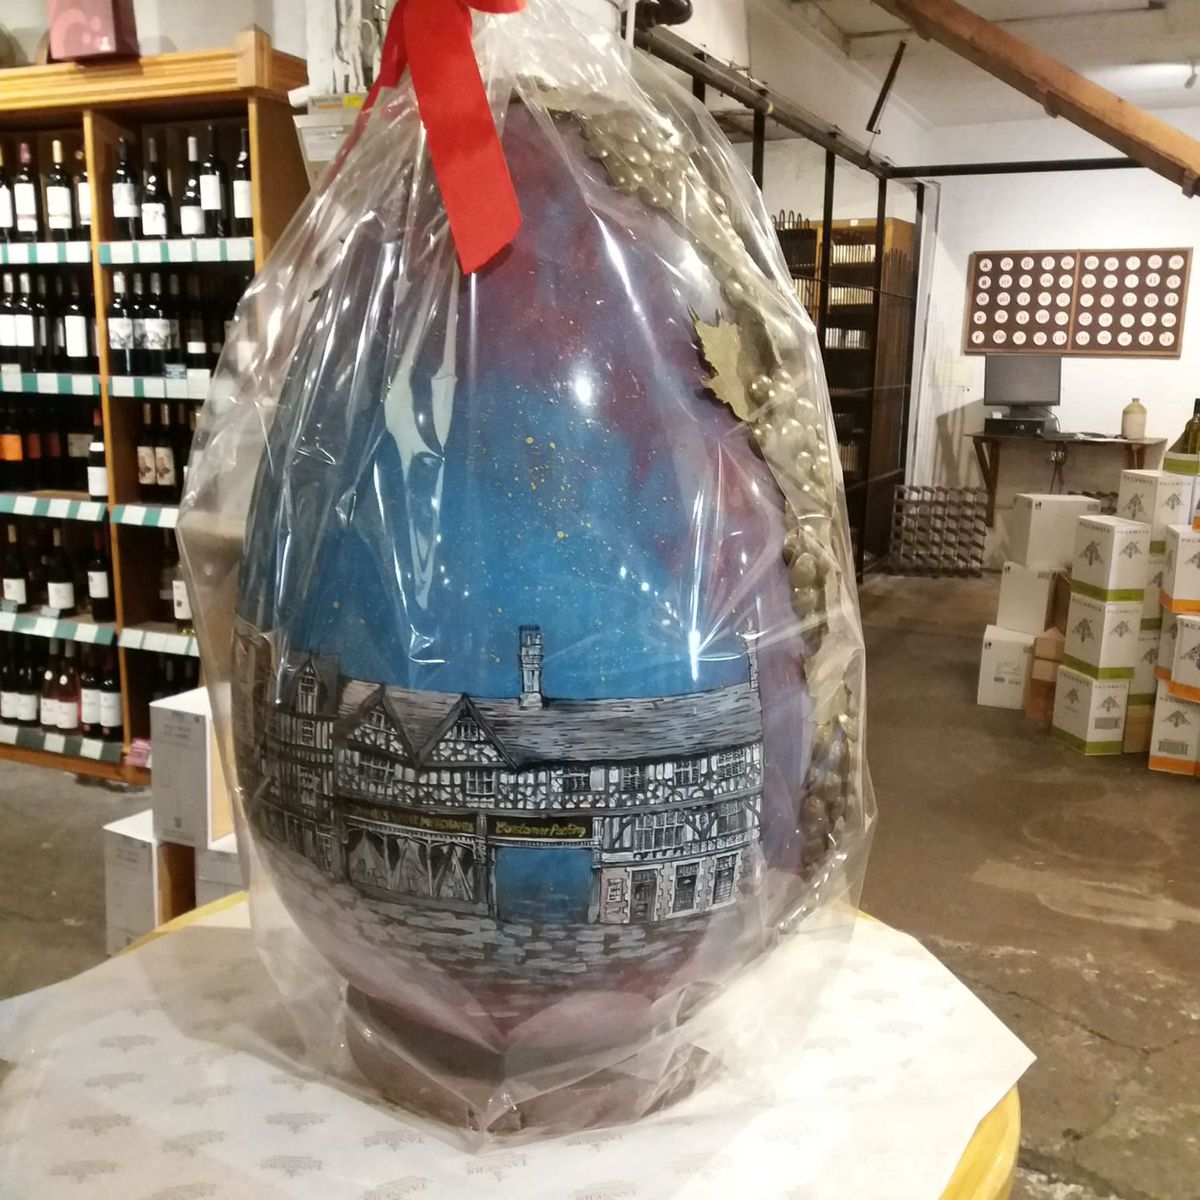 The completed Shrewsbury egg takes pride of place in Tanners' Wine Merchants